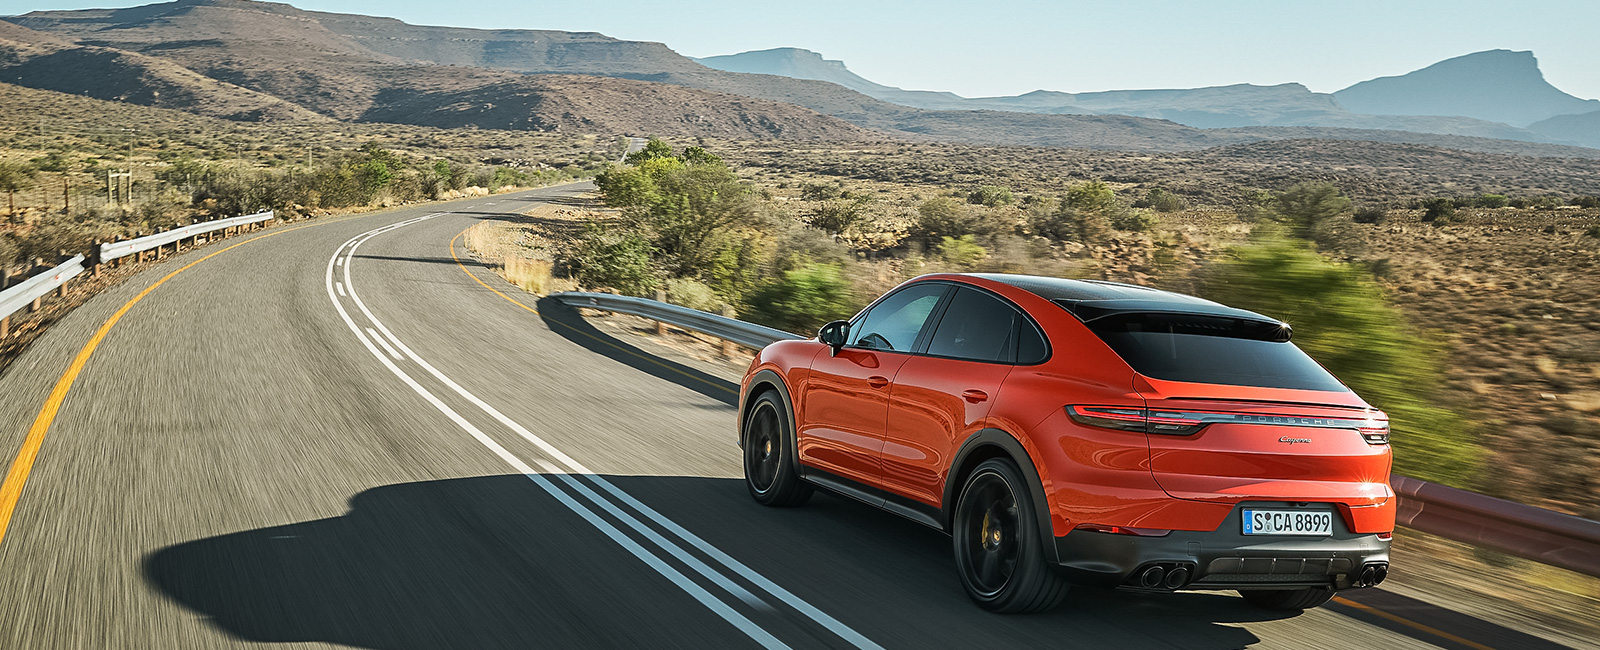 Cayenne Coupe Dr Ing H C F Porsche Ag Press Database